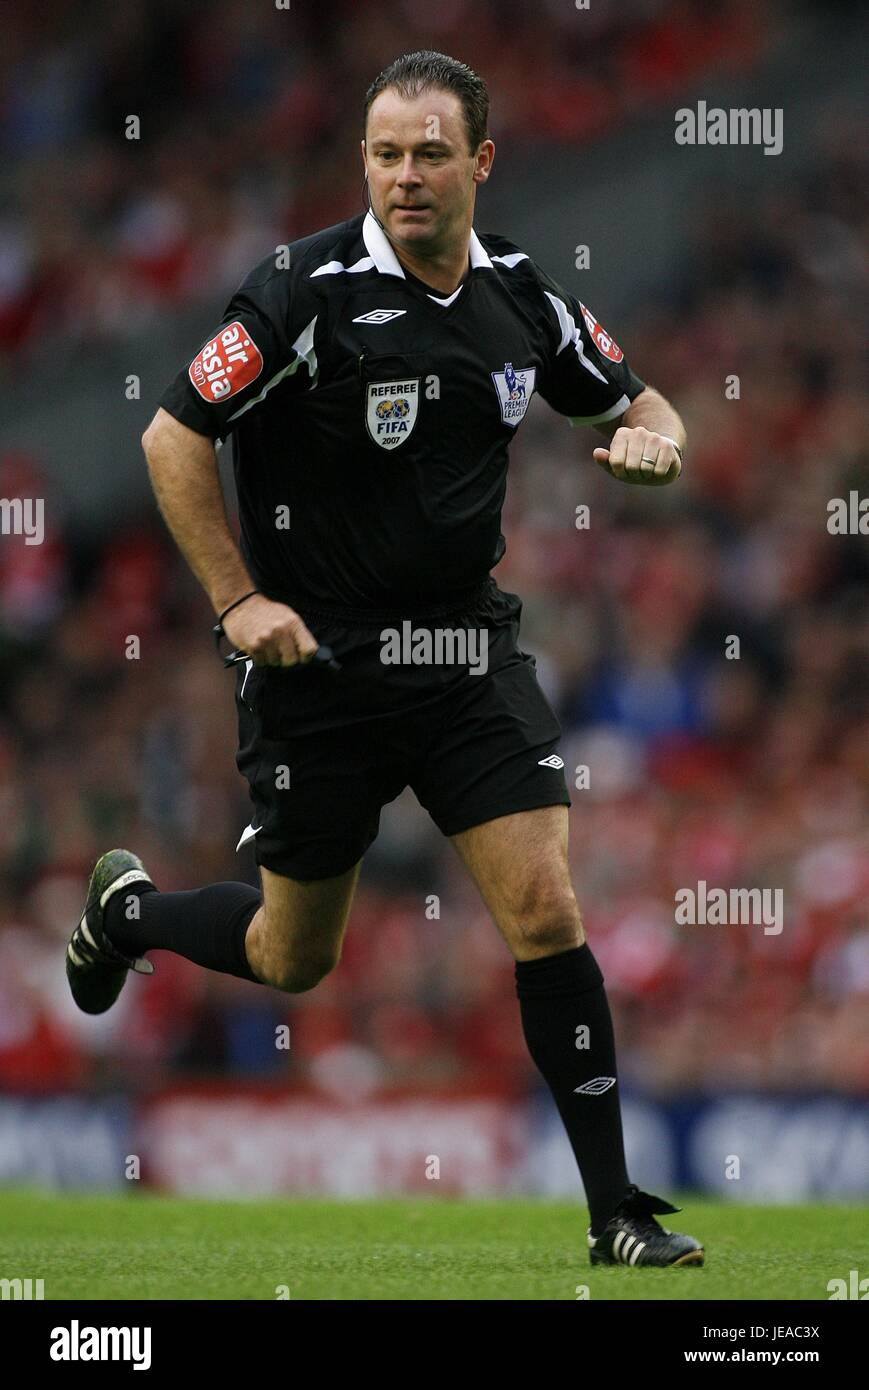 ROB STYLES PREMIERSHIP REFEREE ANFIELD LIVERPOOL ENGLAND 19 August 2007 - Stock Image